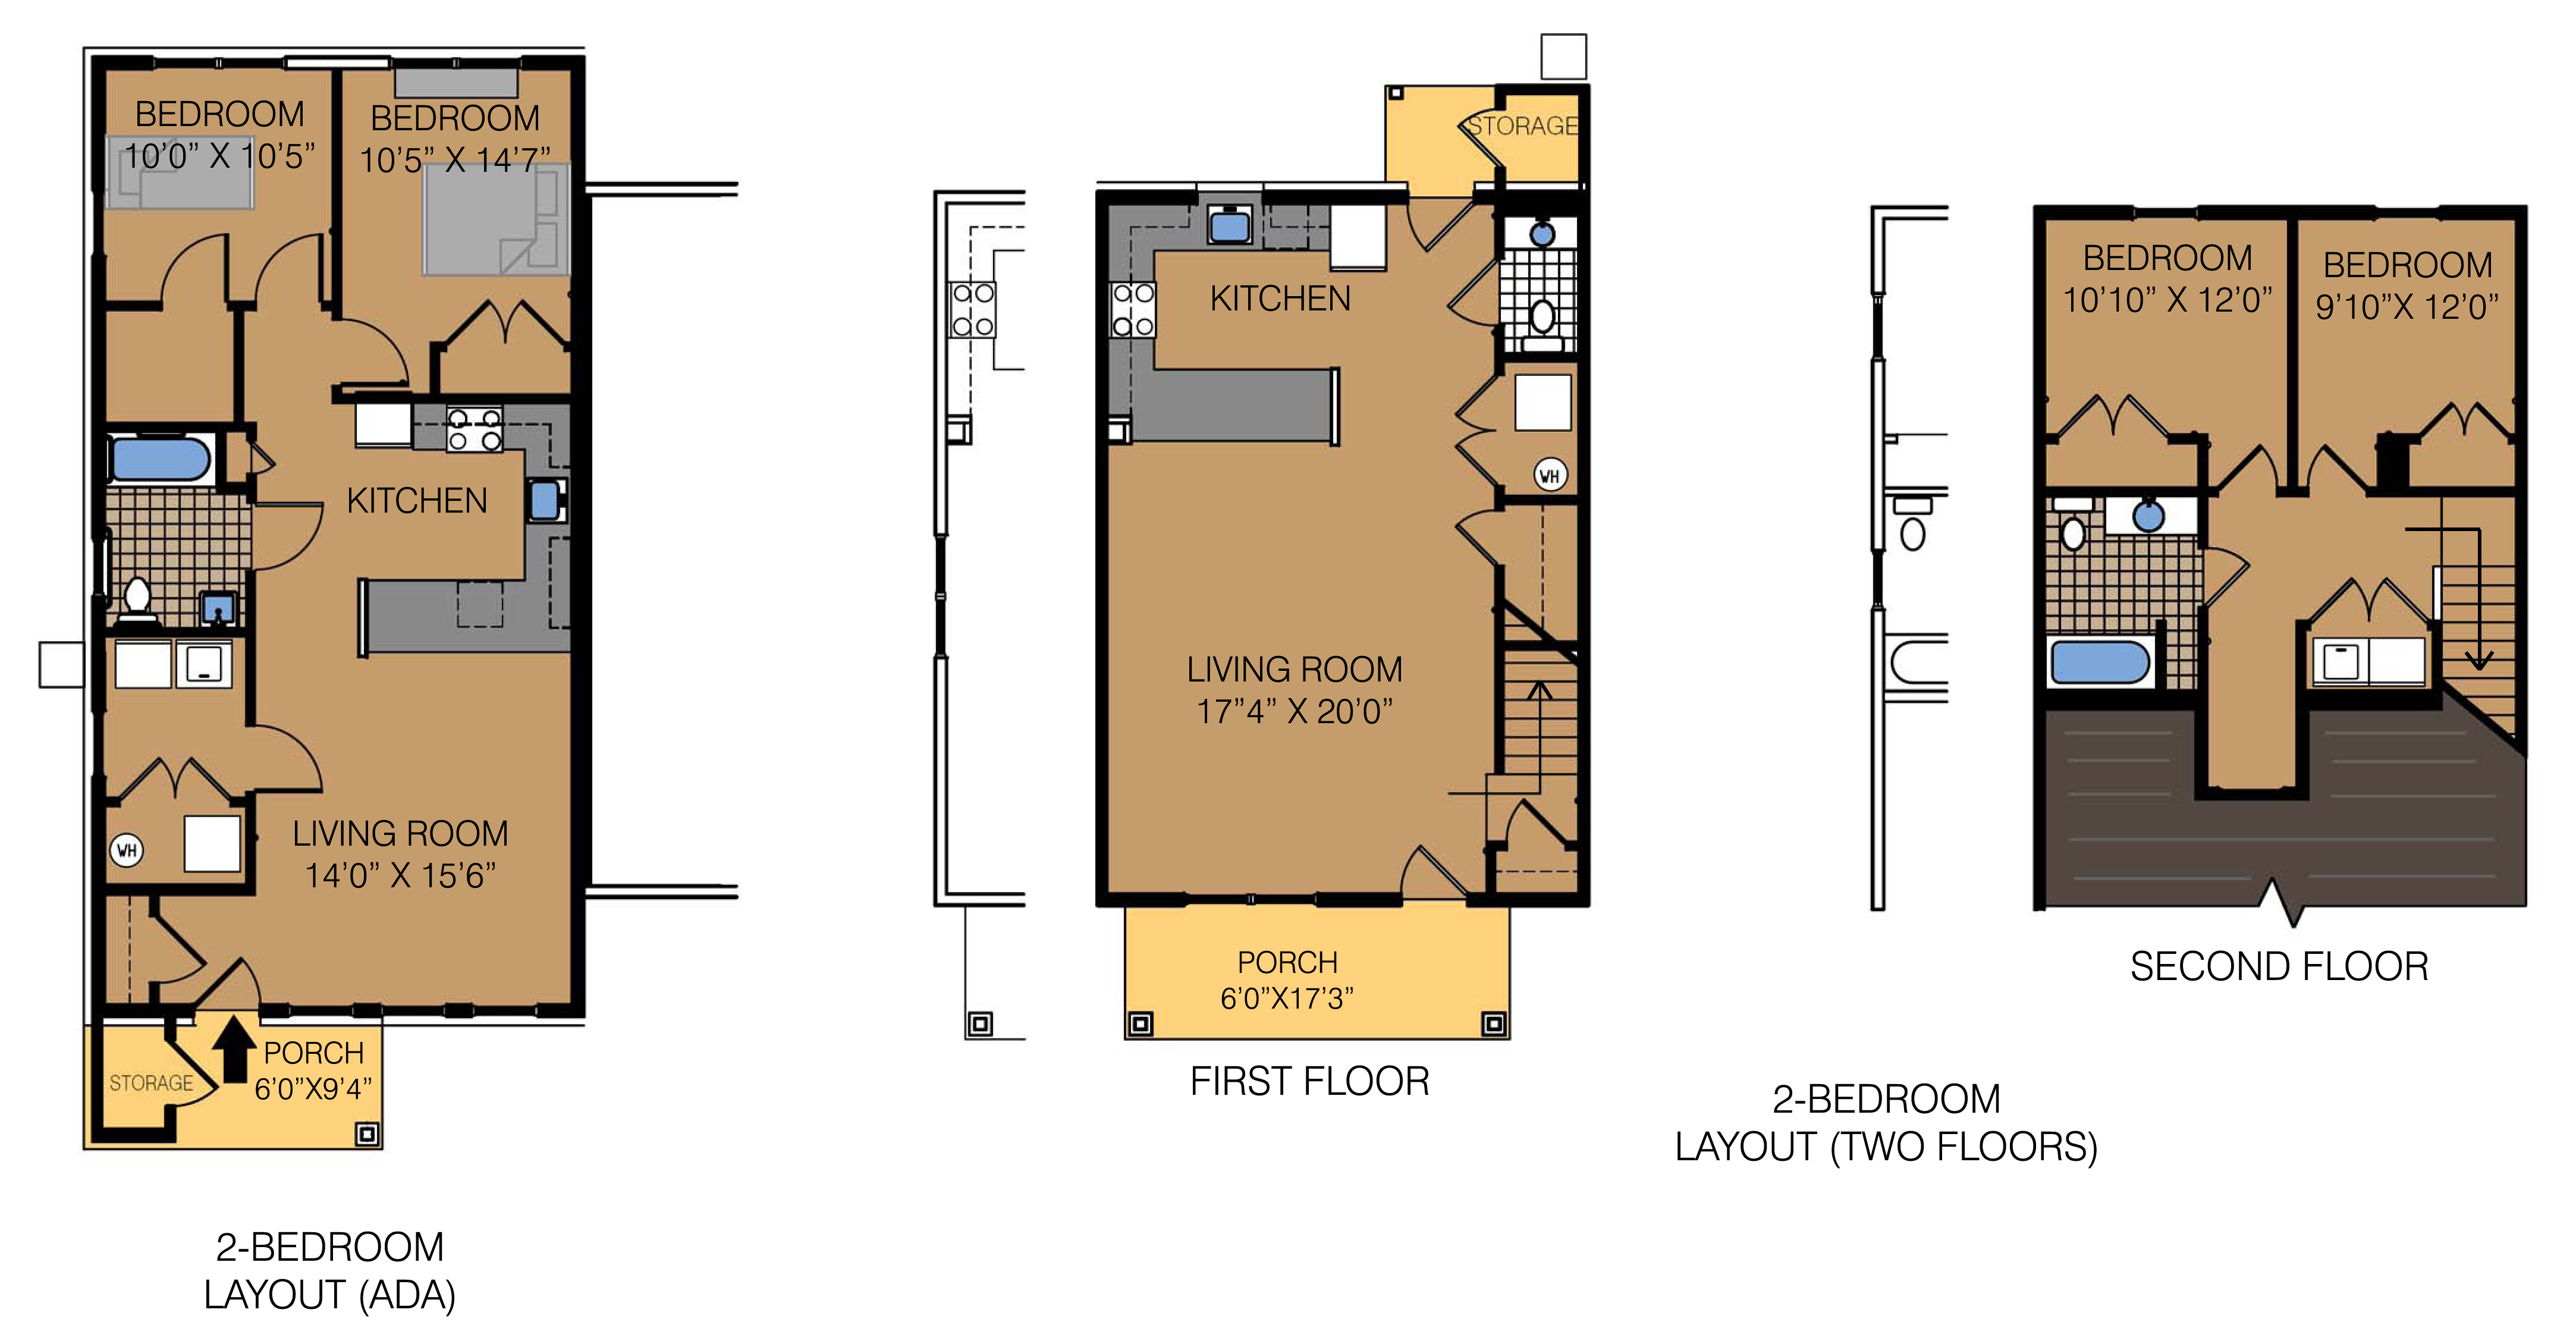 Color Layout 2 Bedroom.jpg (1)